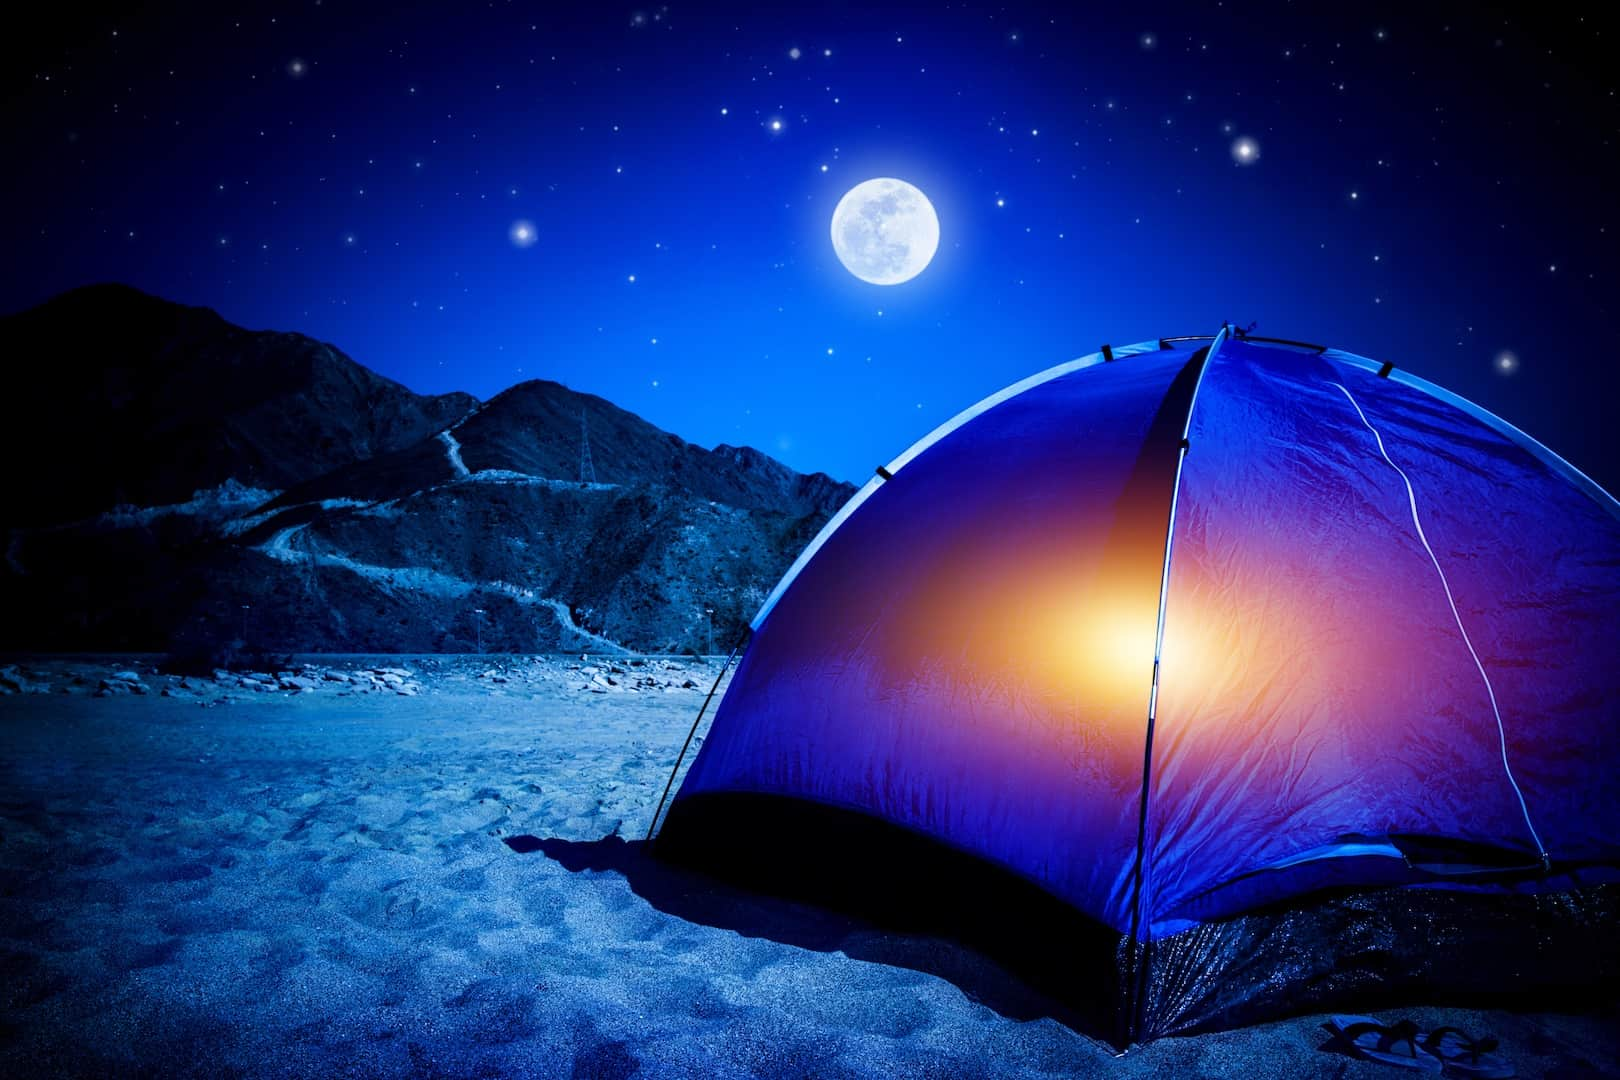 ... Tent For Stargazing? c& at night & What Is The Best Tent For Stargazing? | Camping Pursuits